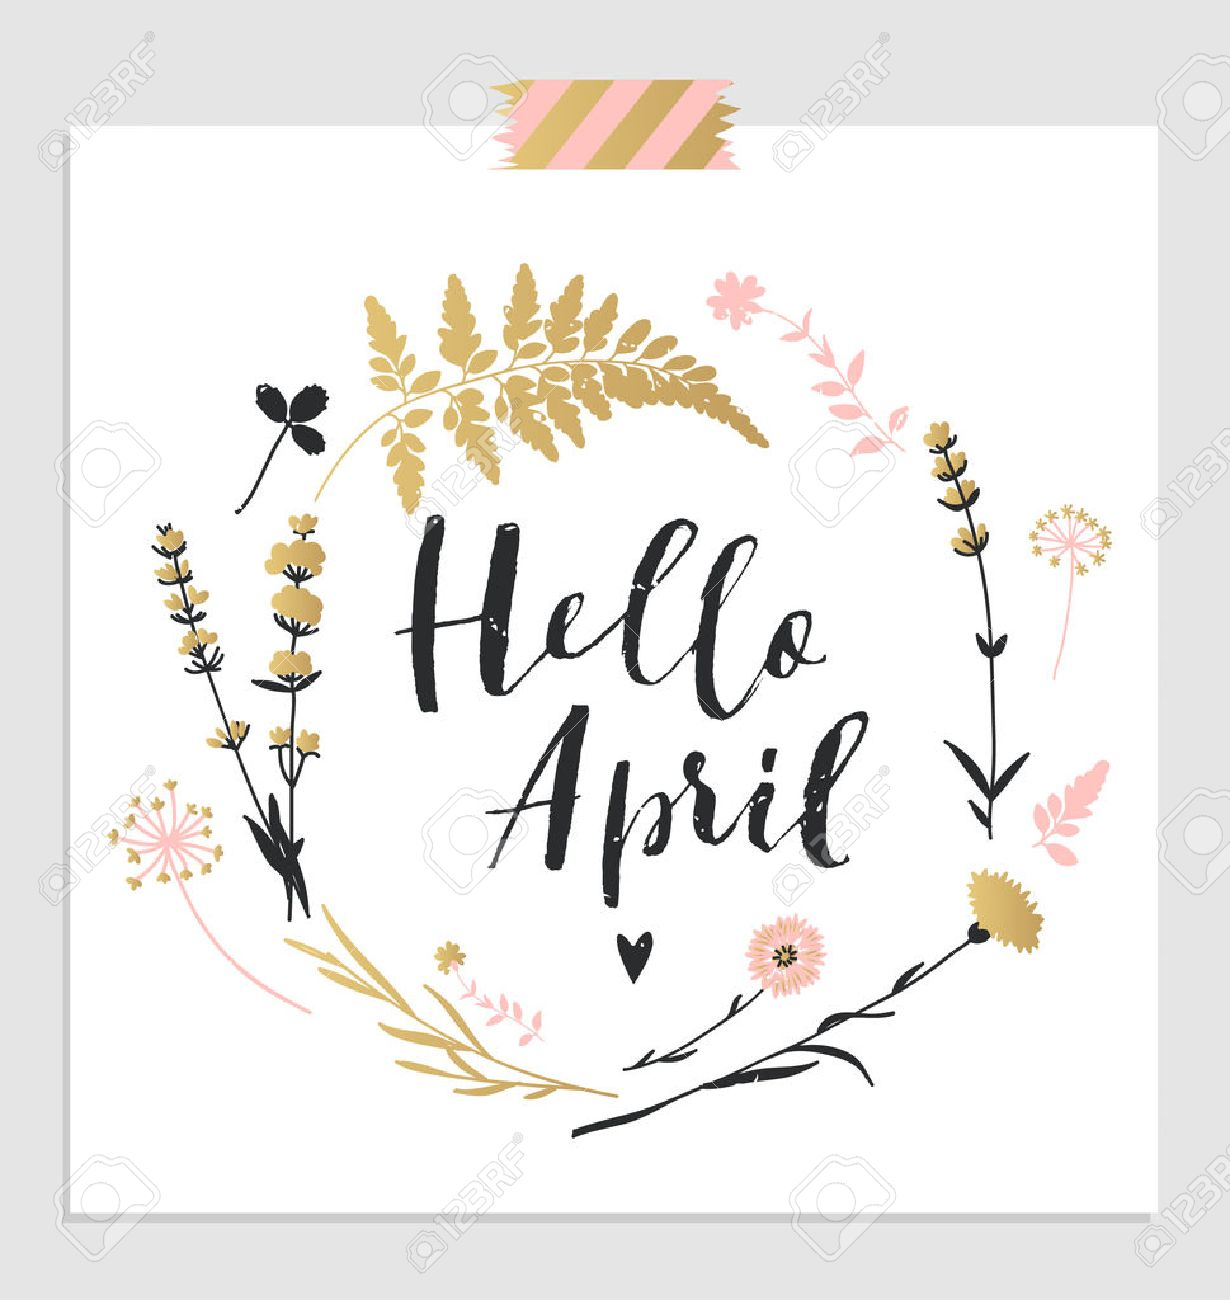 """Cute spring floral card template """"Hello April"""". Perfect for invitation, scrapbooking, web, card, blog, sale, calendar cover, notes and many other. Vector illustration - 55487423"""